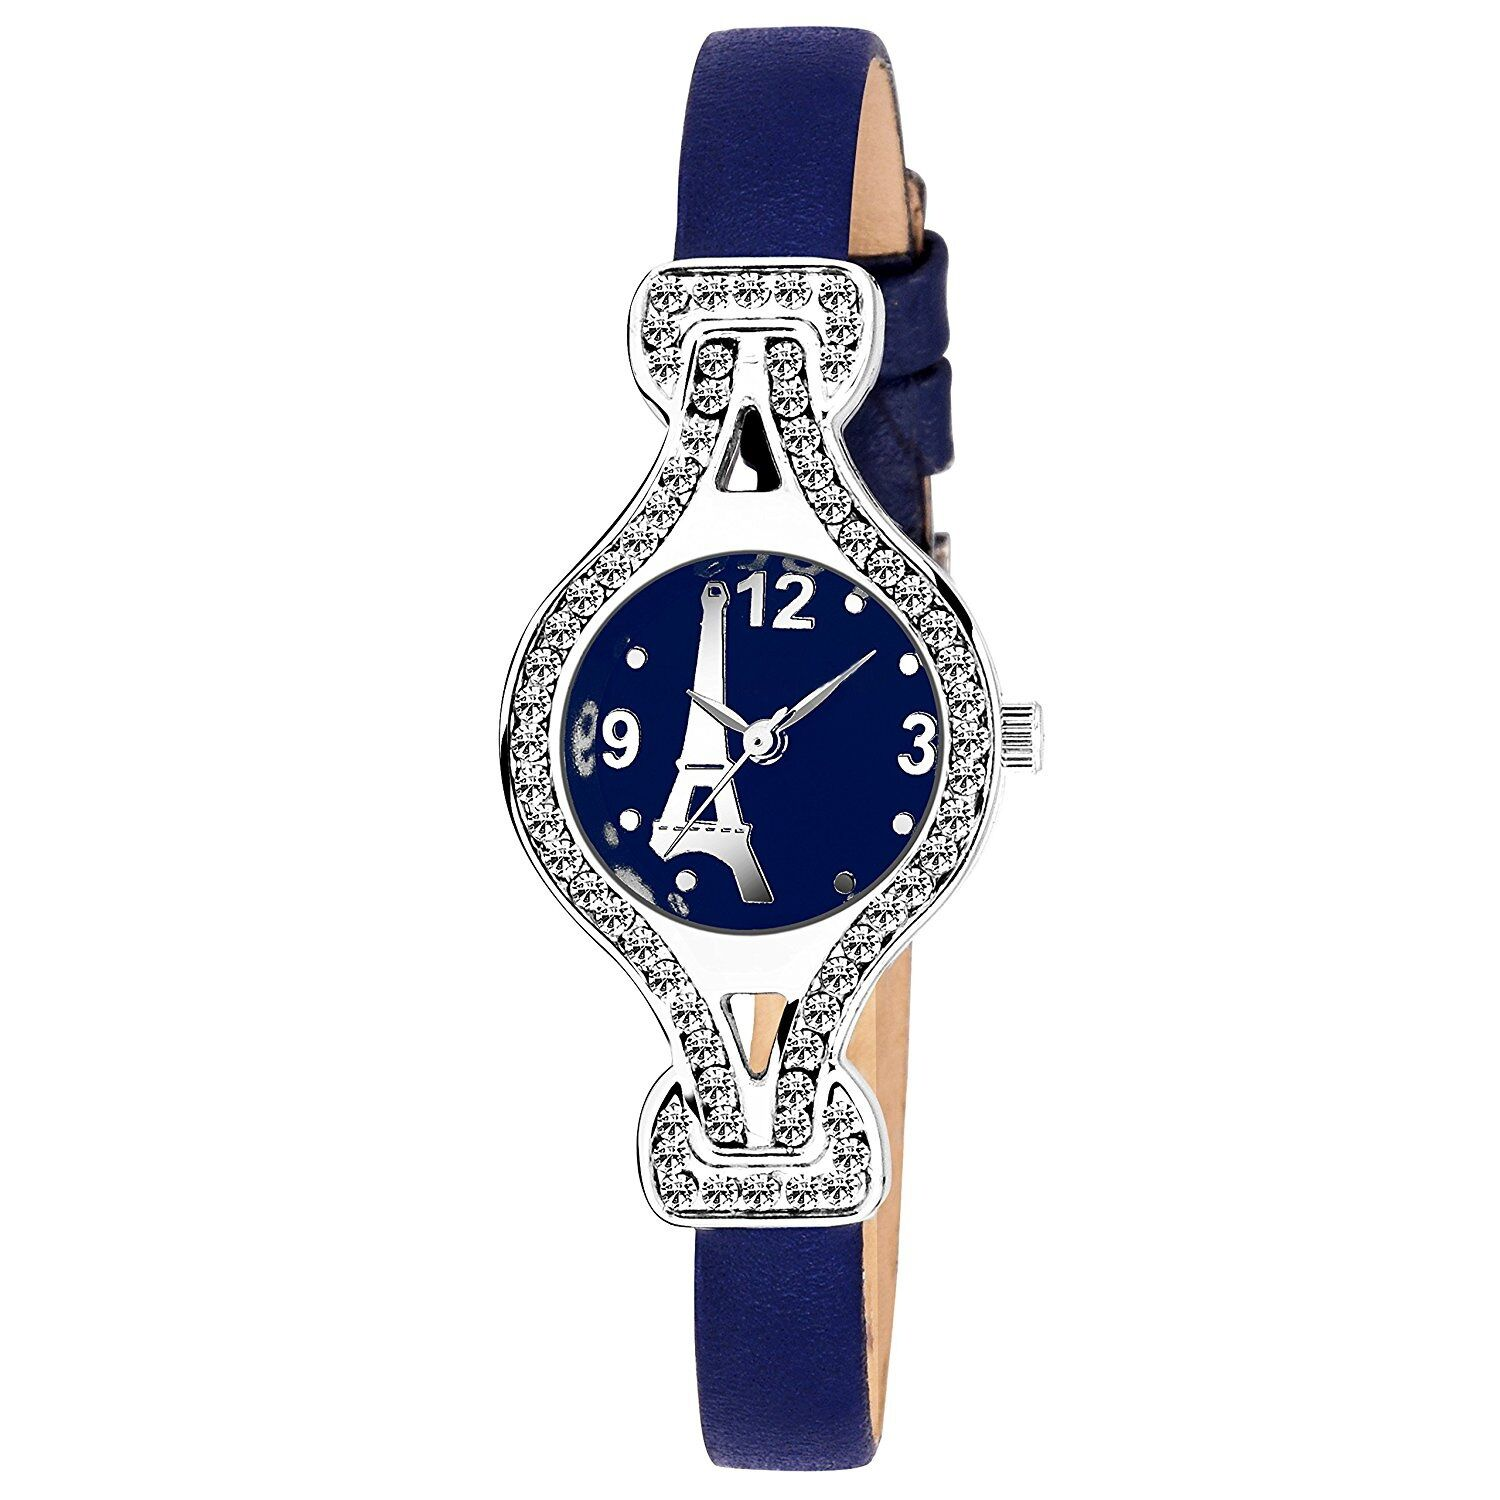 Senjarya Times Slim Blue Dial Perish Design Blue Leather Belt Watch For Girls And Ladies